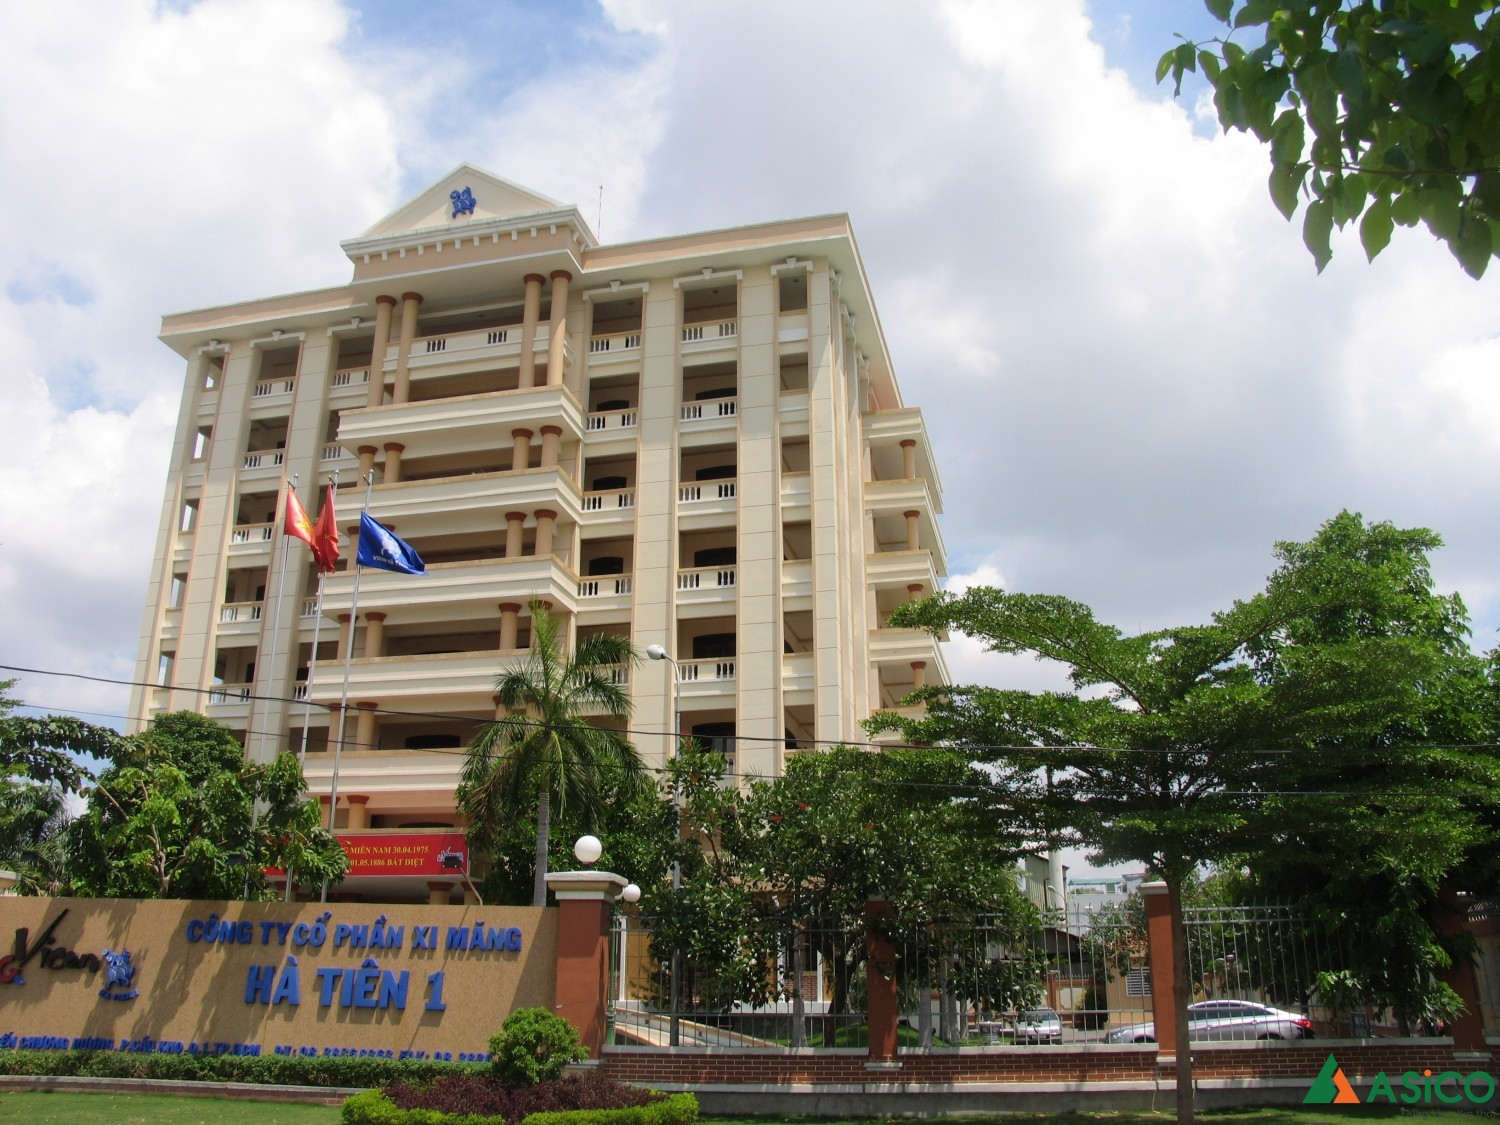 Head Office of Ha Tien 1 Cement Joint Stock Company